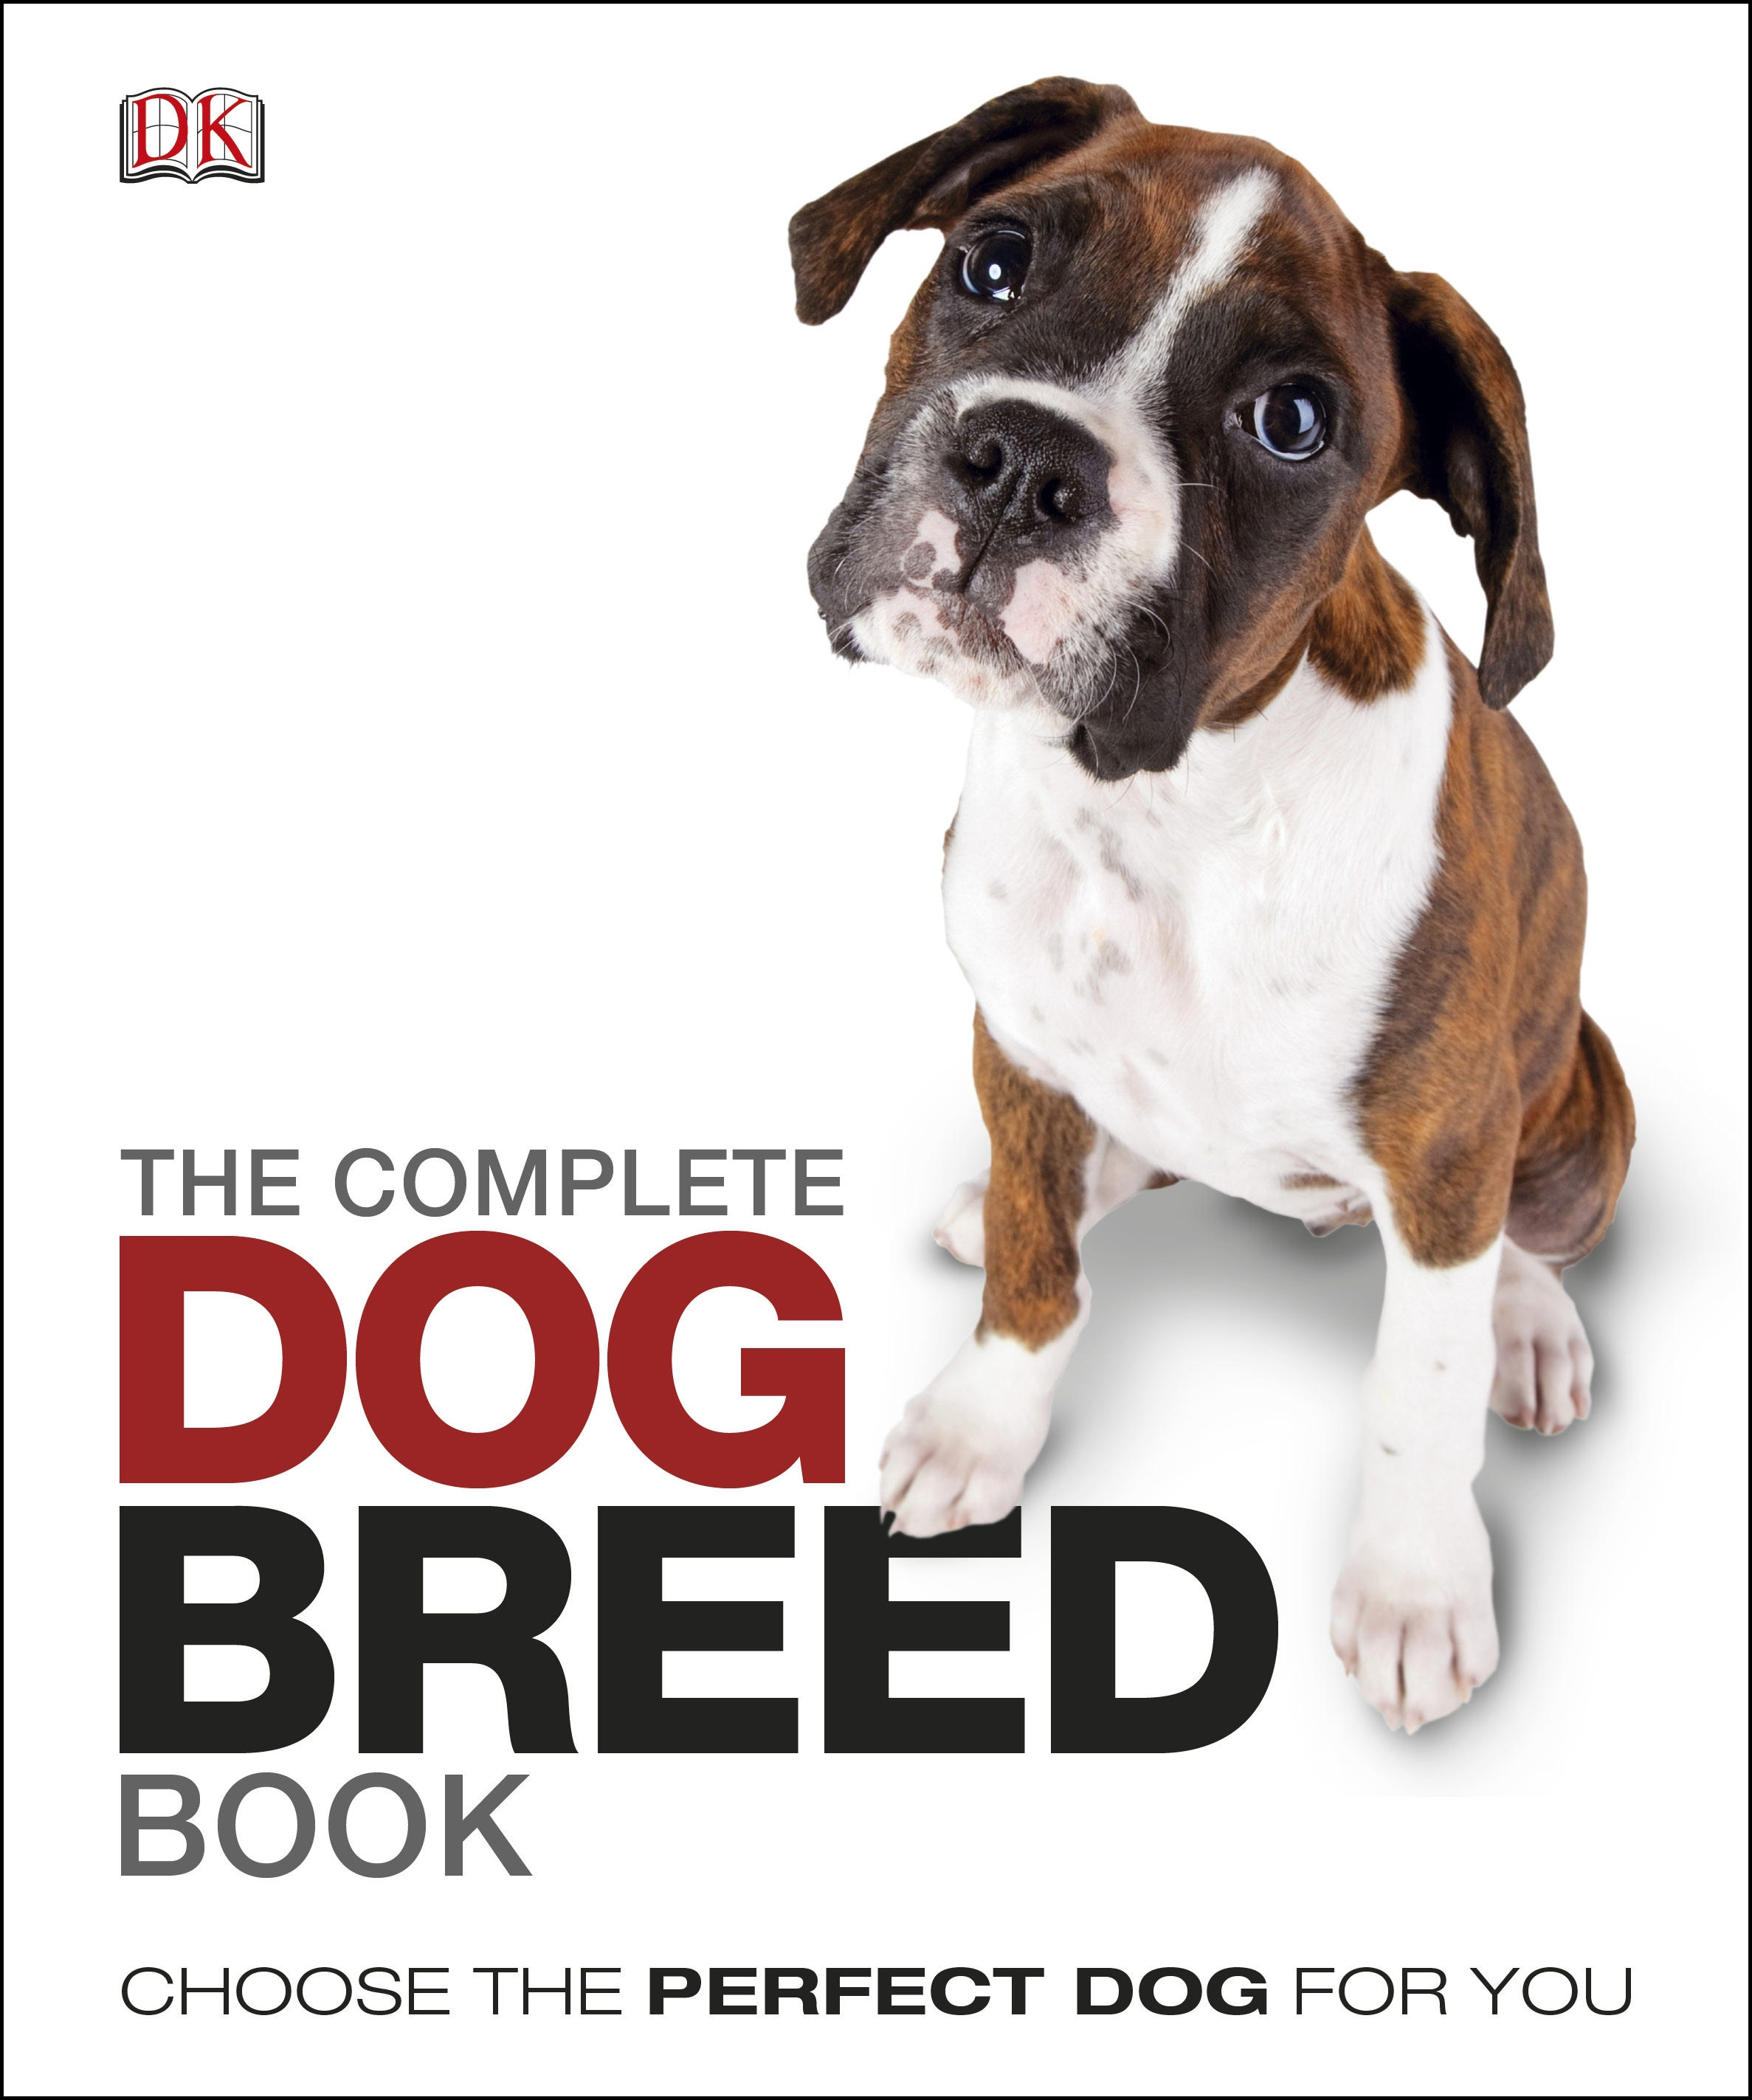 The Complete Dog Breed Book by DK, ISBN: 9781405394666